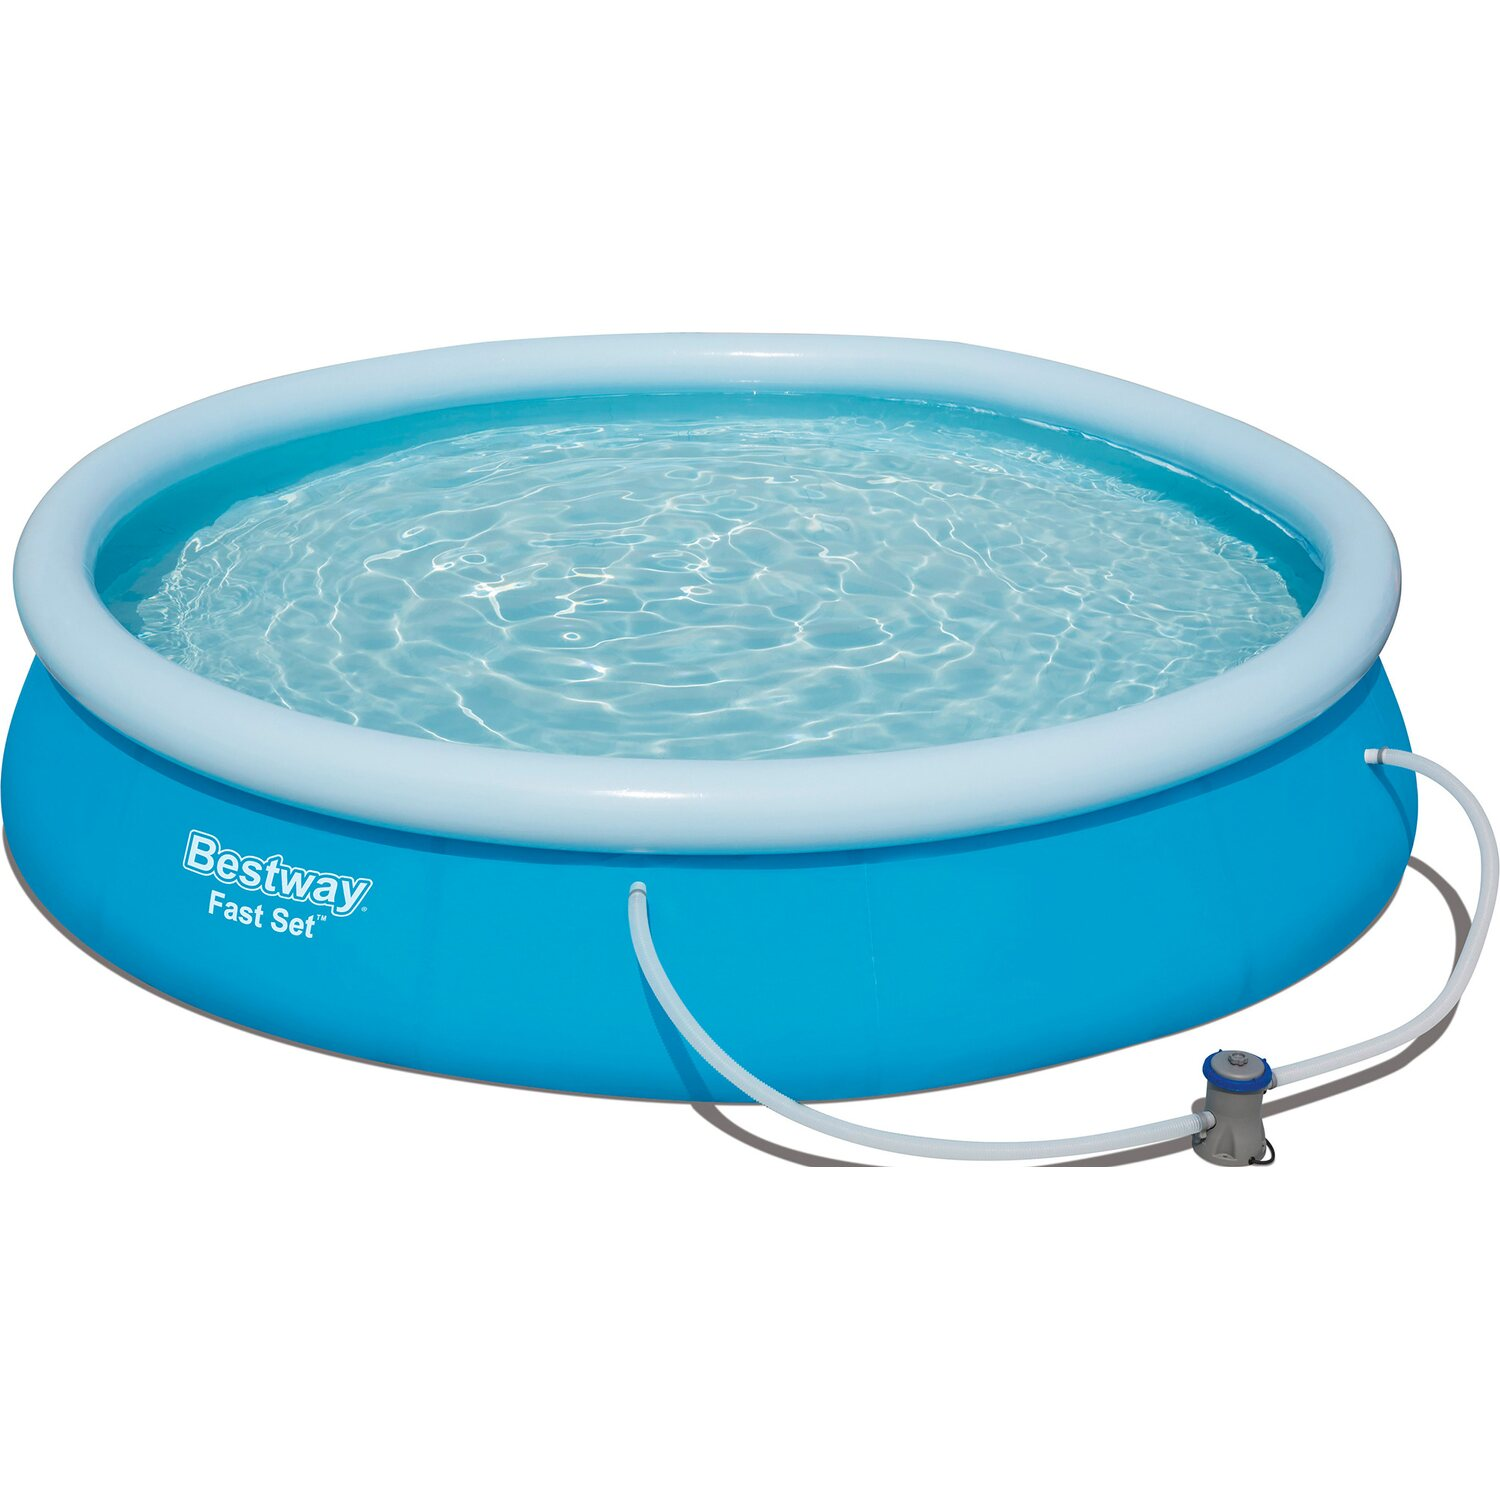 Bestway fast set pool 366 cm x 76 cm kaufen bei obi for Bestway pool obi